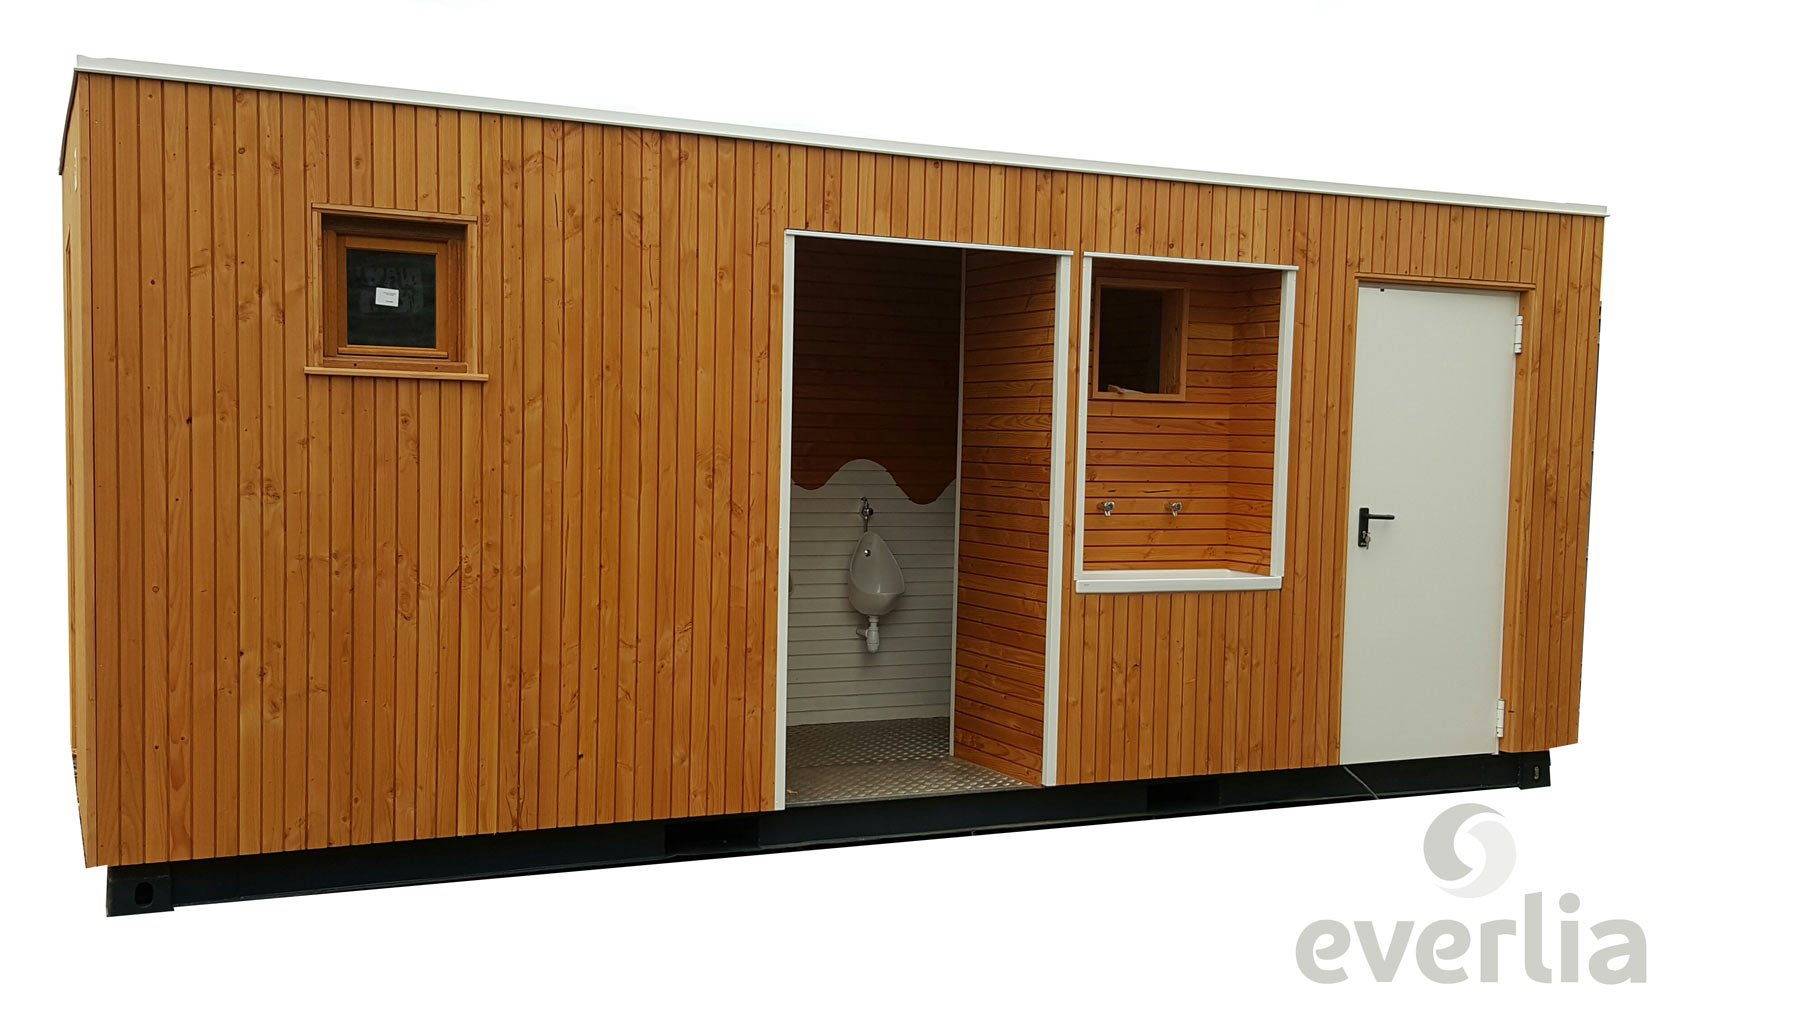 collectivit s locales wc container vestiaires douches maison container. Black Bedroom Furniture Sets. Home Design Ideas